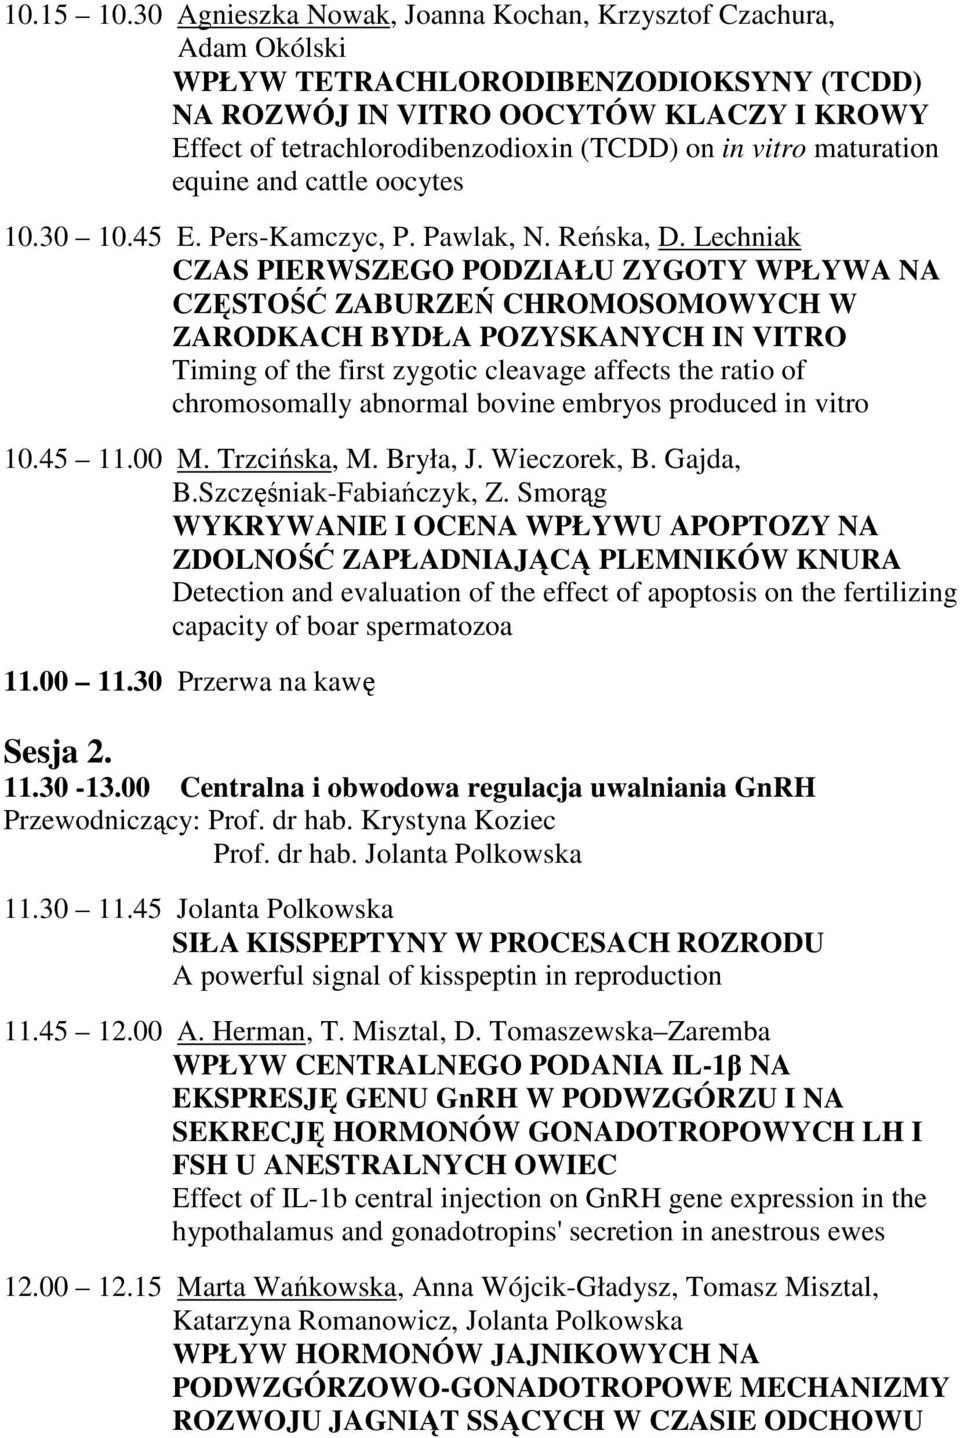 vitro maturation equine and cattle oocytes 10.30 10.45 E. Pers-Kamczyc, P. Pawlak, N. Reńska, D.